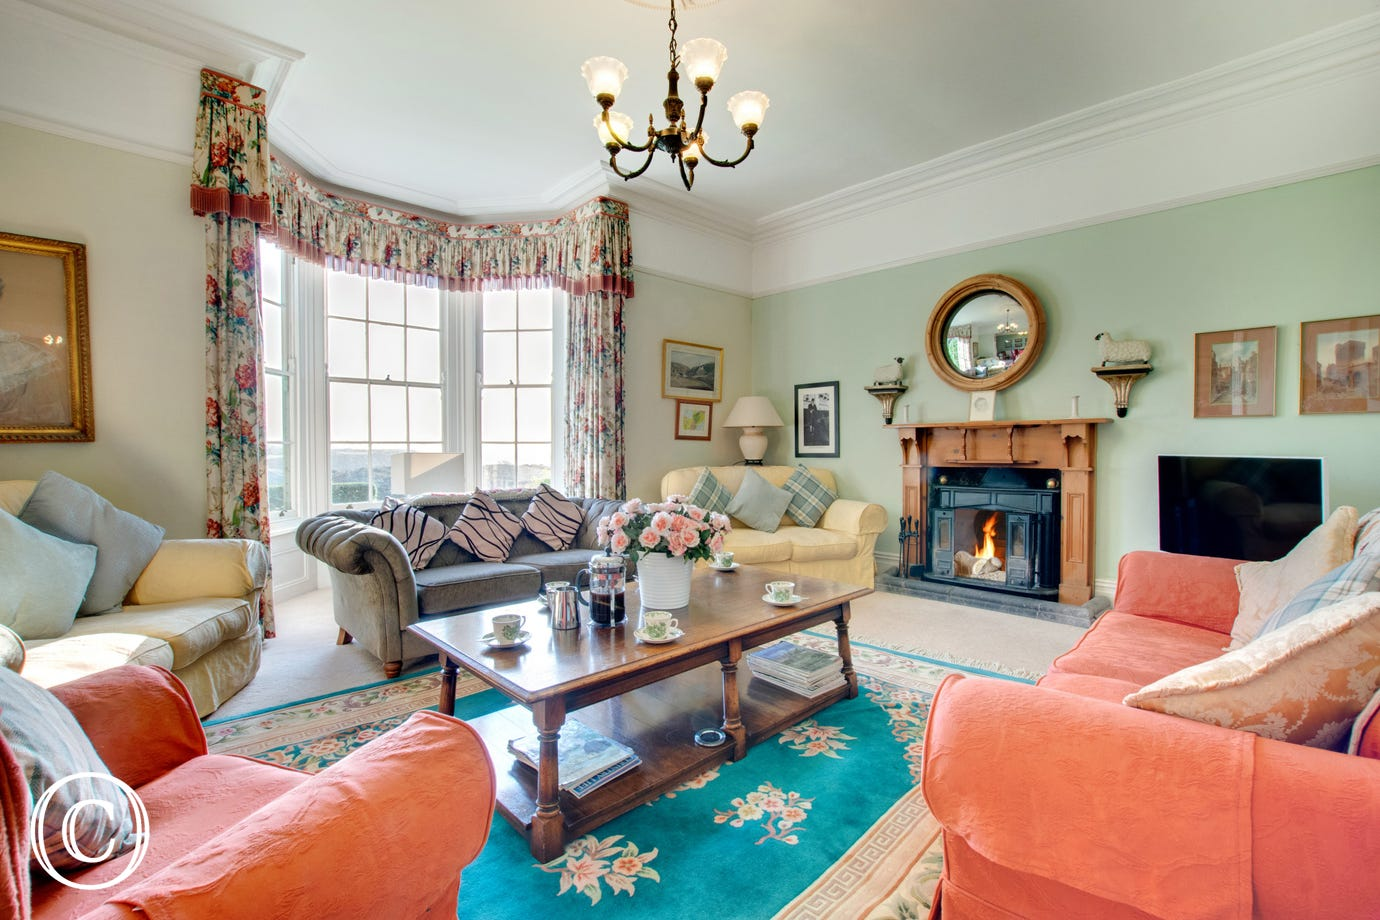 The large drawing room with bay window looking out over the lawns and sea views beyond.